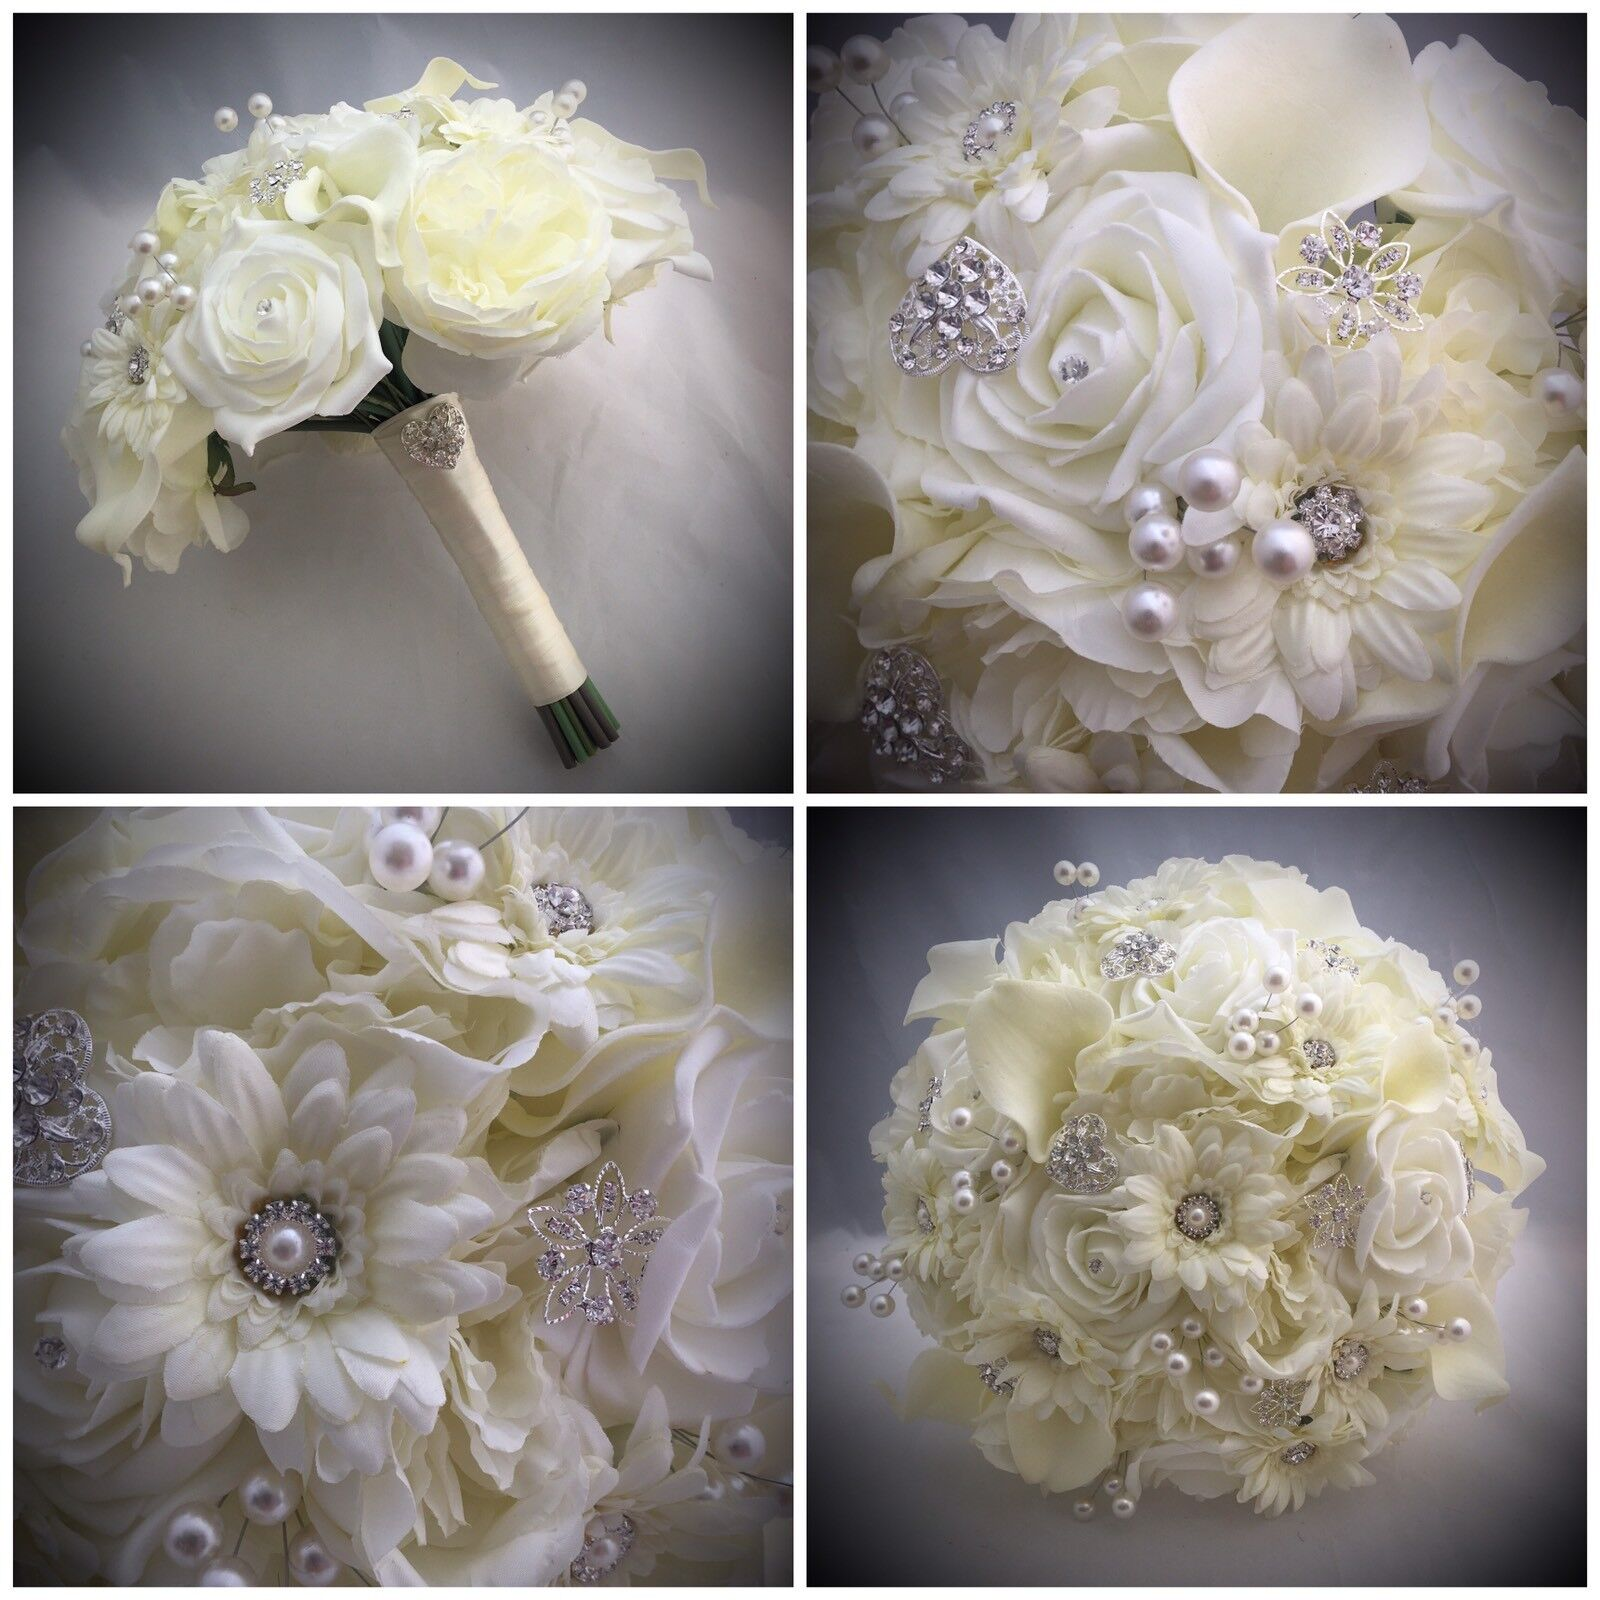 BRIDE VINTAGE BOUQUET BROOCH WEDDING IVORY MIXED FLOWERS PEONY LILIES PEARLS